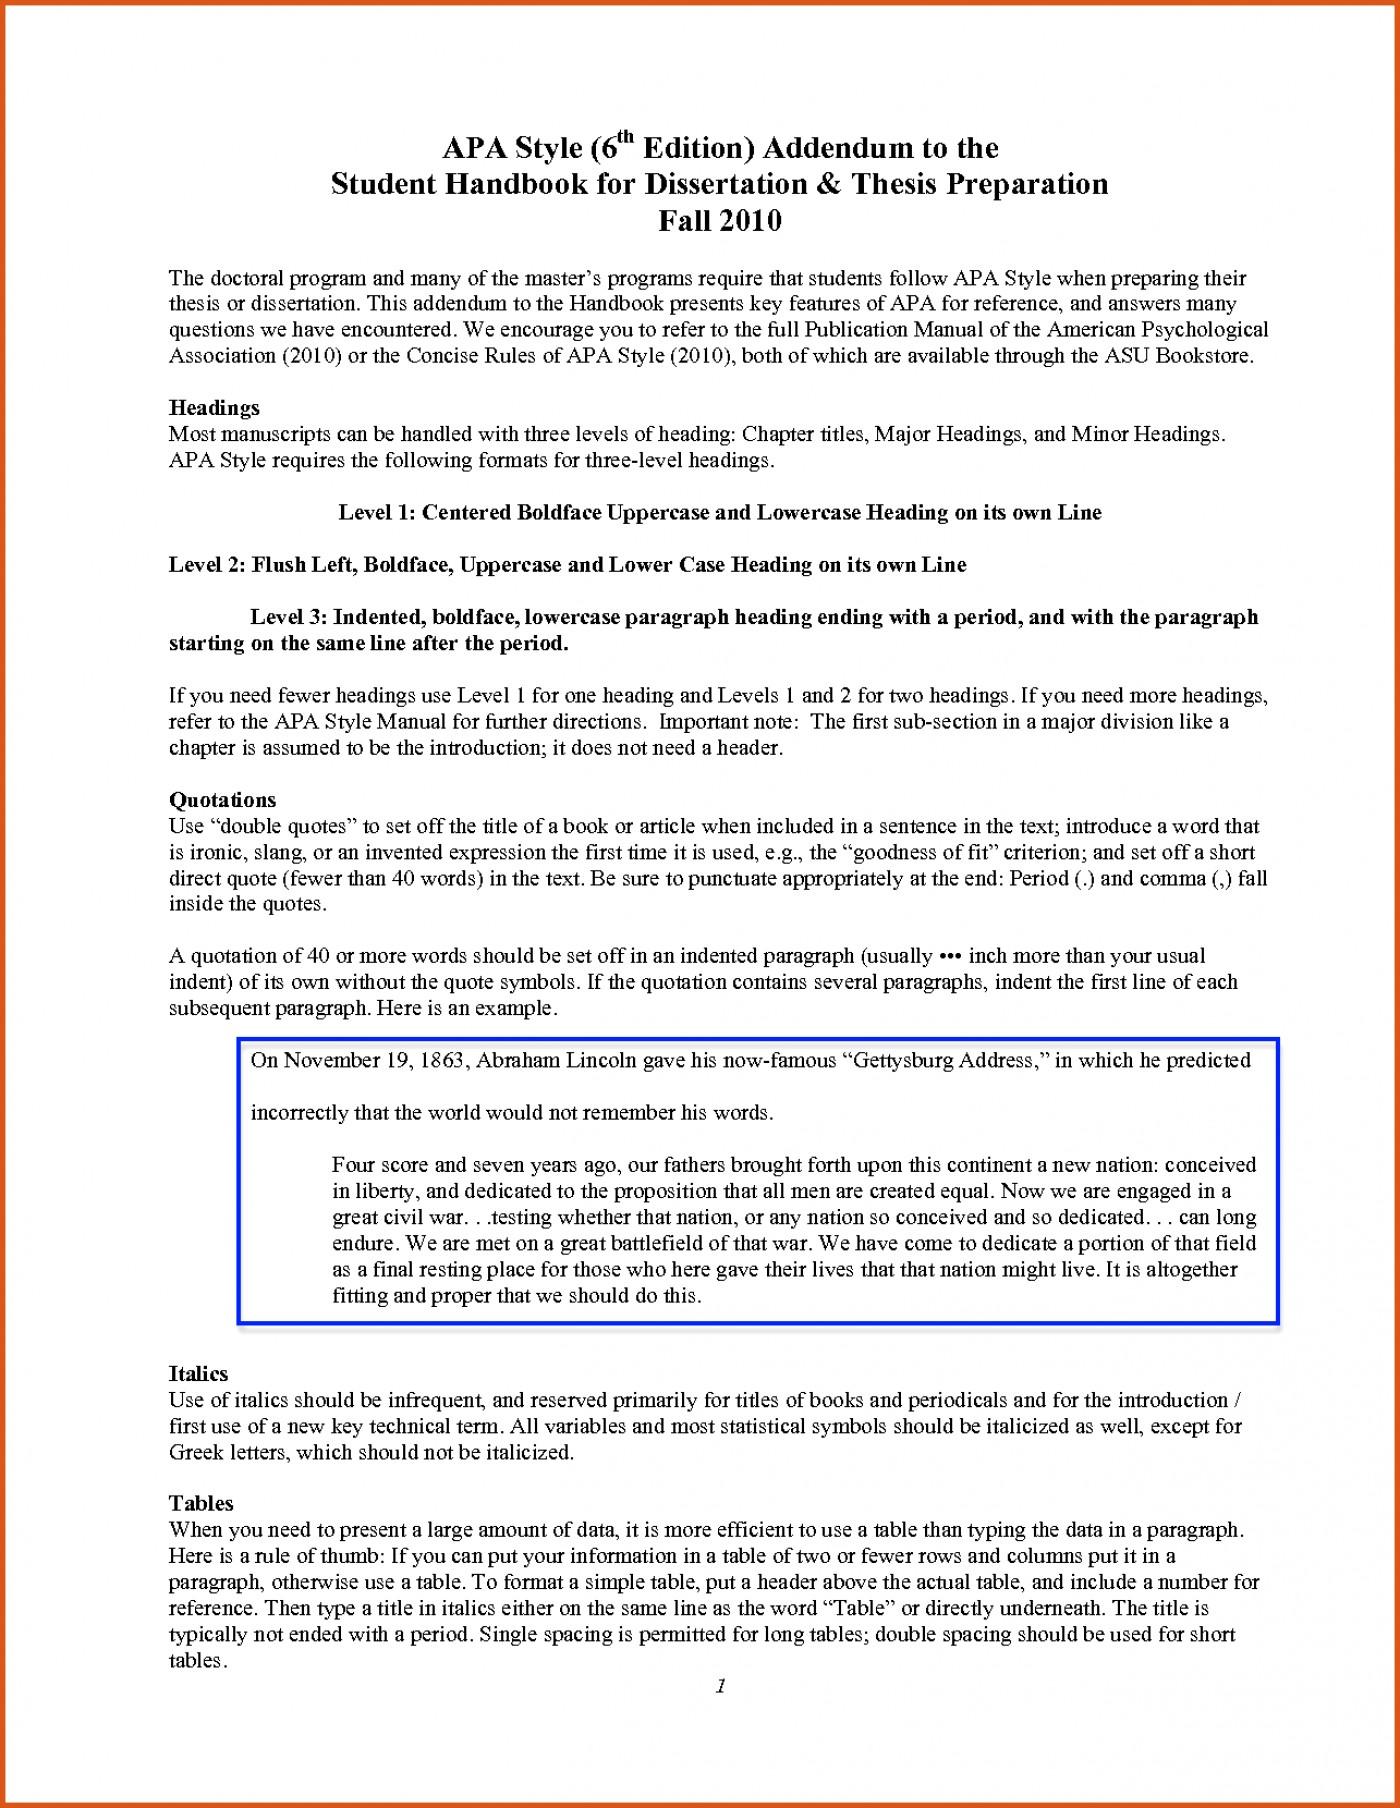 008 Research Paper Bunch Ideas Of Apa Style Guide 6th Edition Example Ive Ceptivmat Unique Format For Template 1400